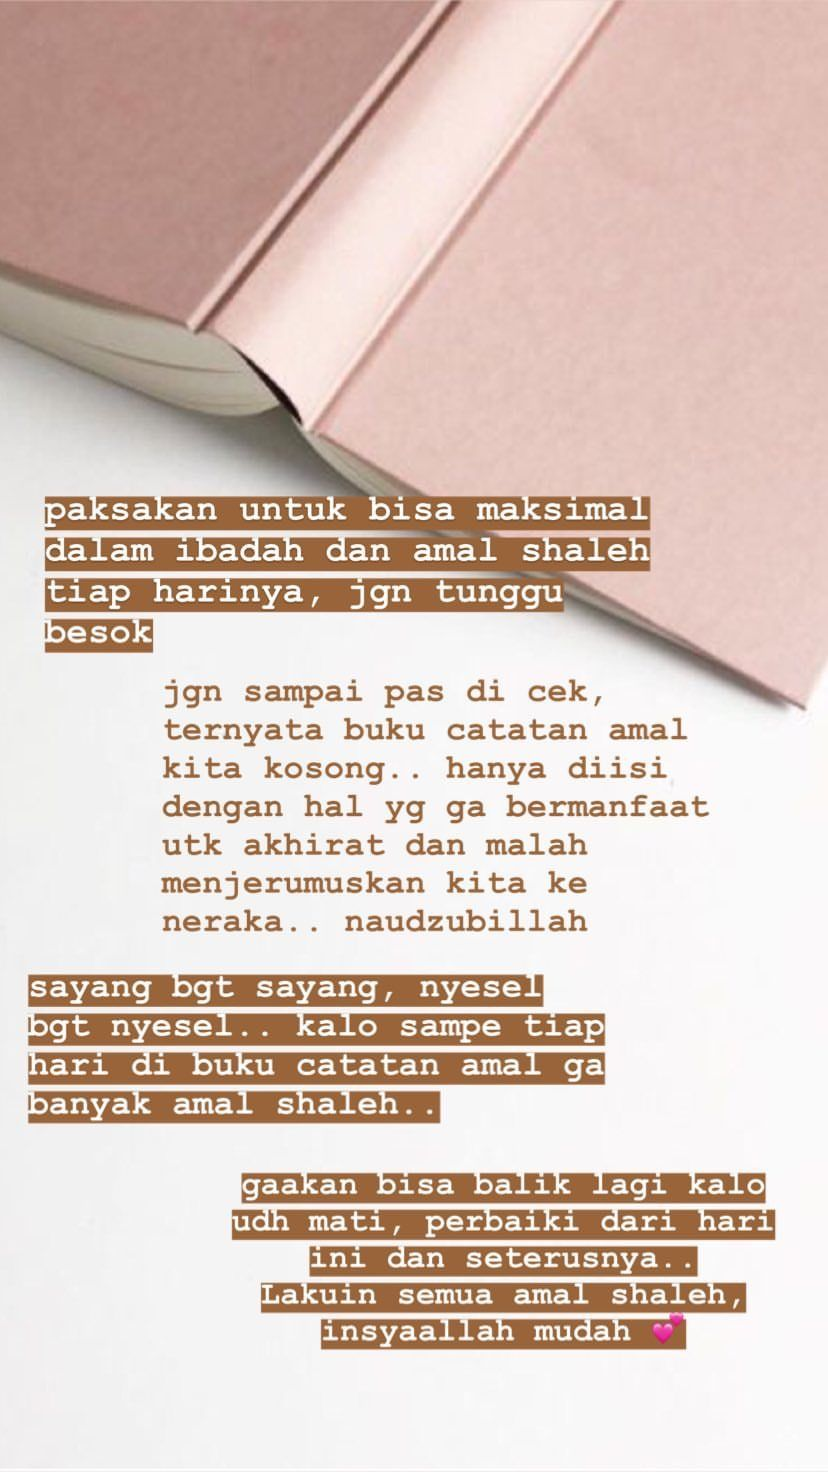 Pin By Numpy Aja On Reminder Pinterest Quotes Islamic Quotes